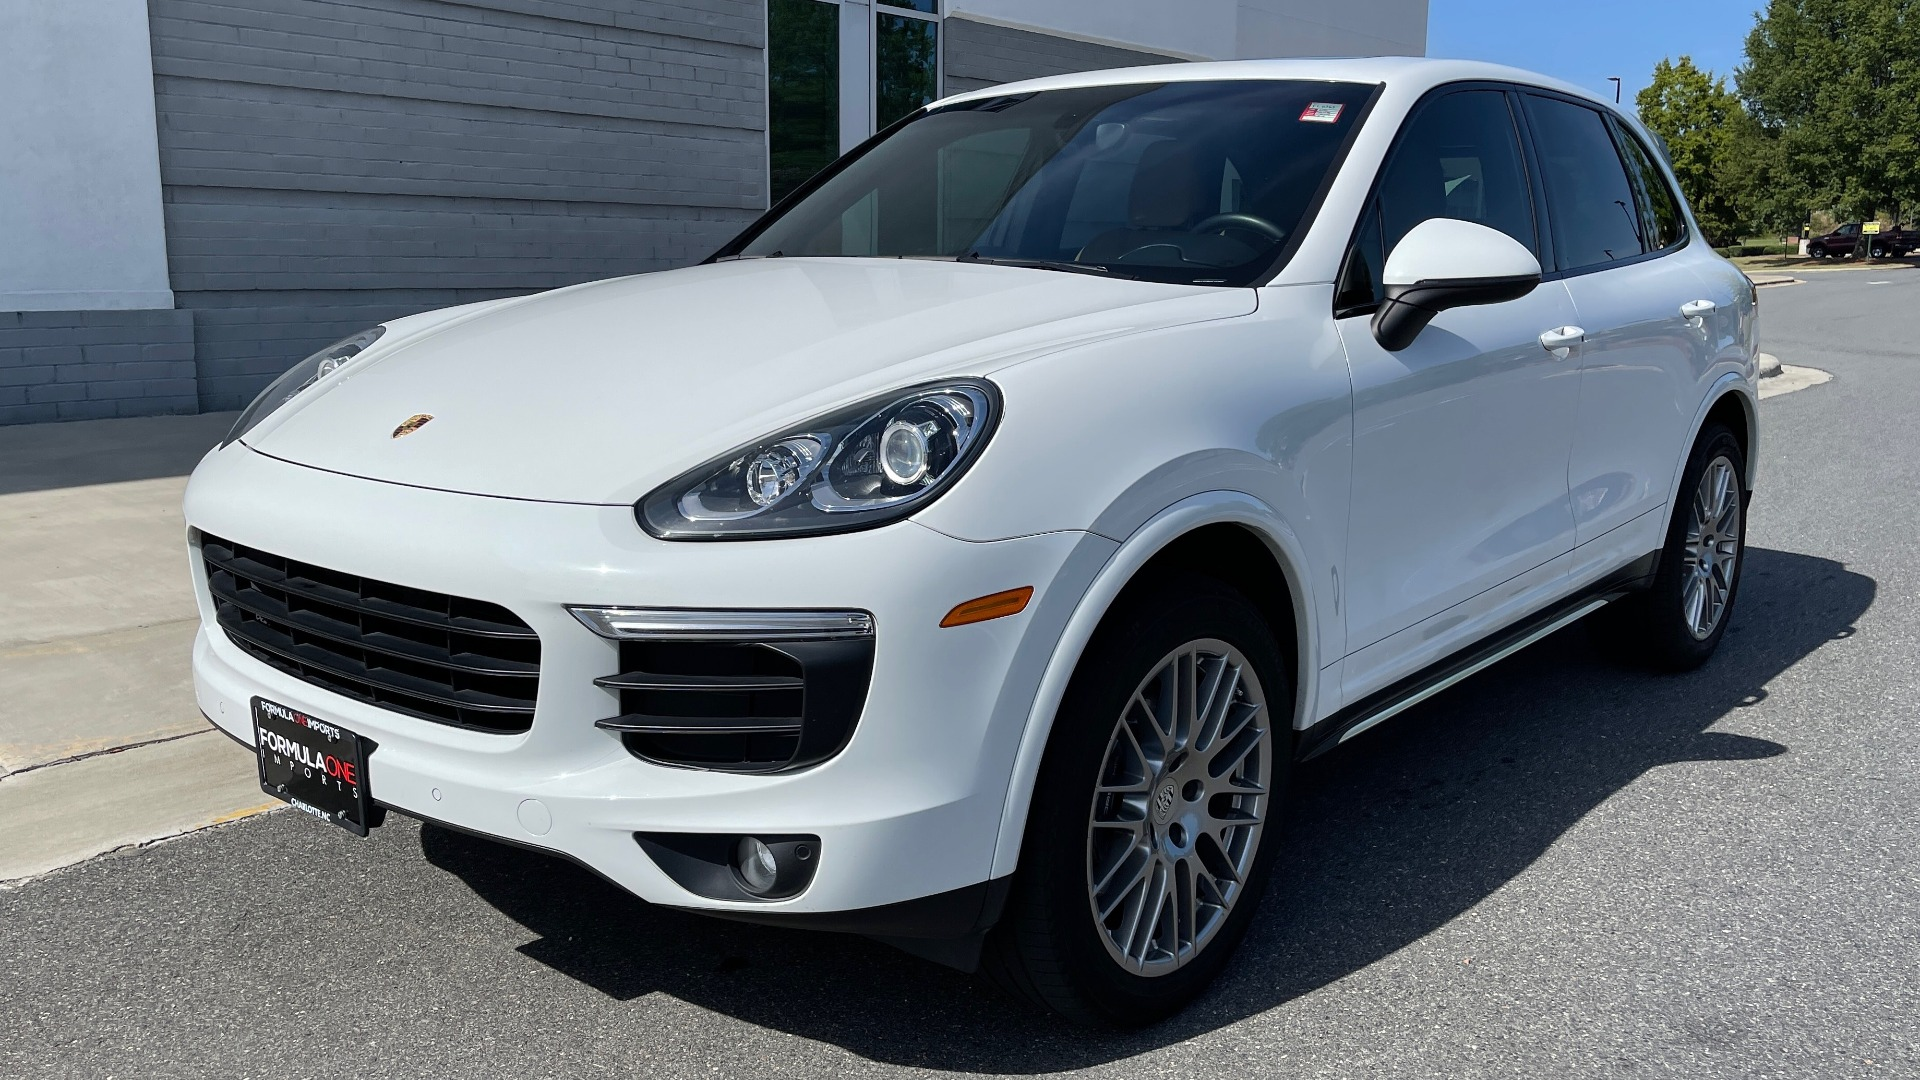 Used 2016 Porsche CAYENNE AWD / 3.6L TURBO / PREMIUM / BOSE / PANO-ROOF / NAV / LCA for sale $32,995 at Formula Imports in Charlotte NC 28227 3